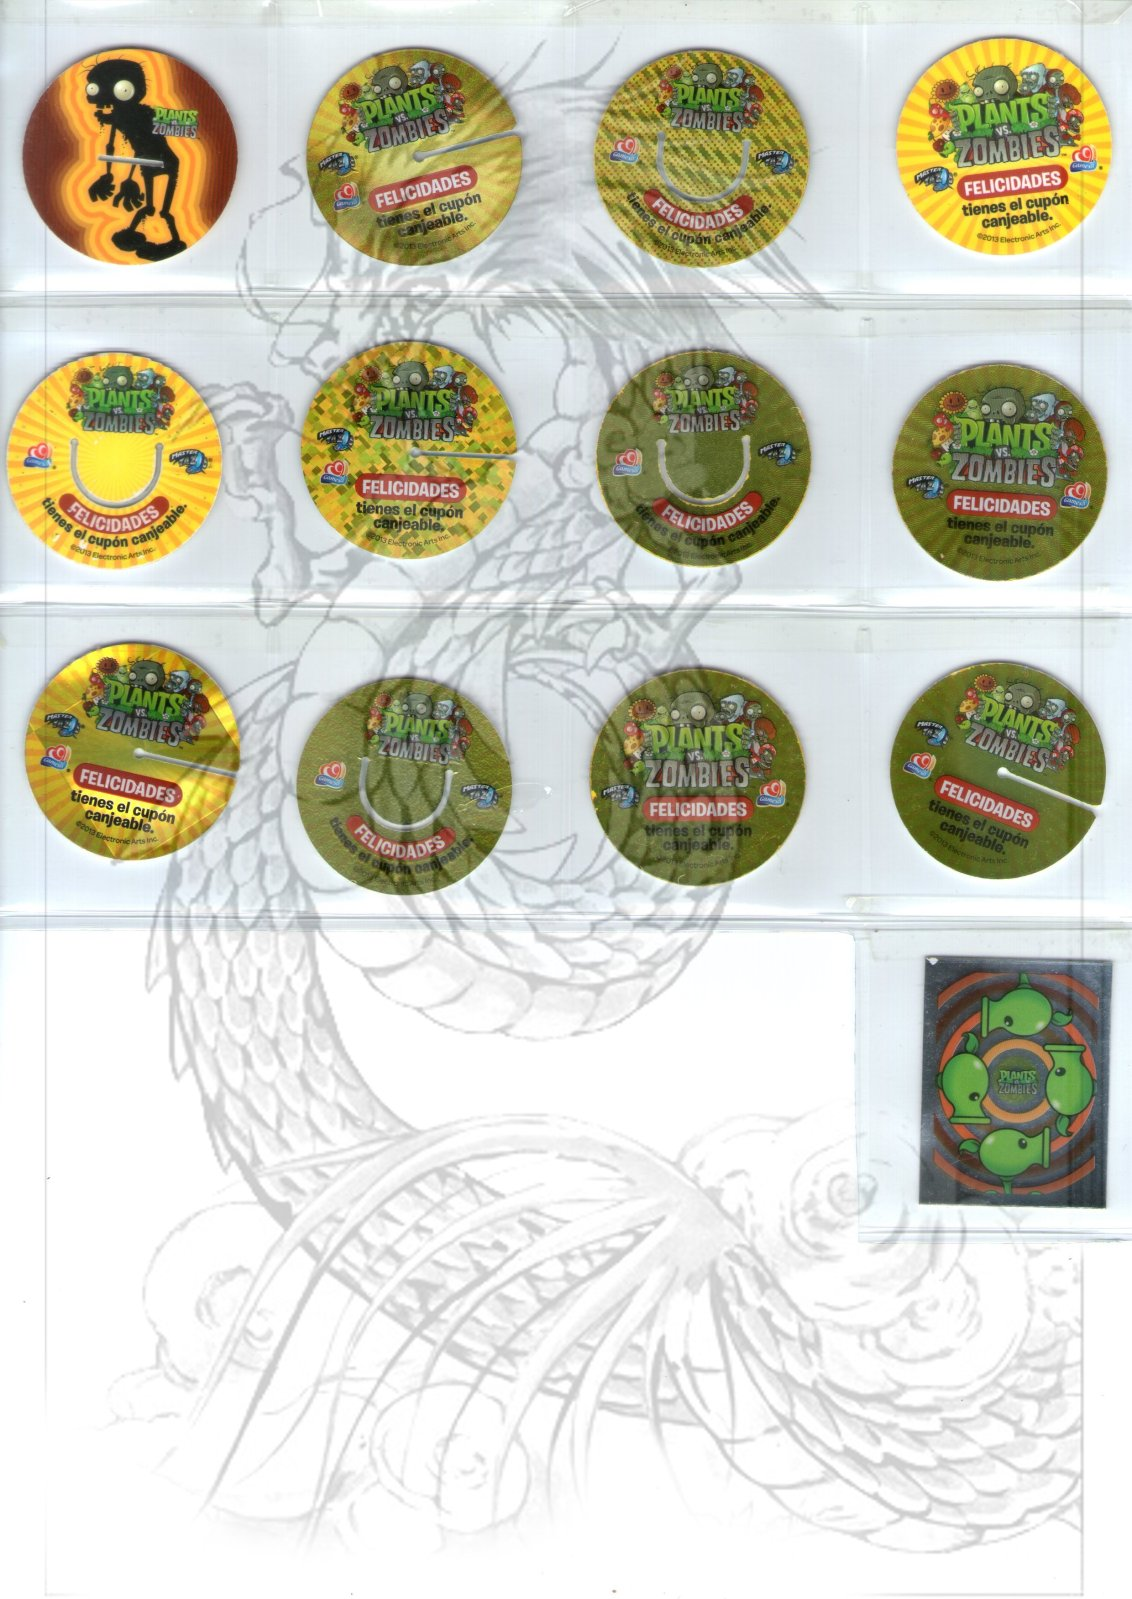 Tazos Plantas Vs Zombies de SABRITAS 8znw4h